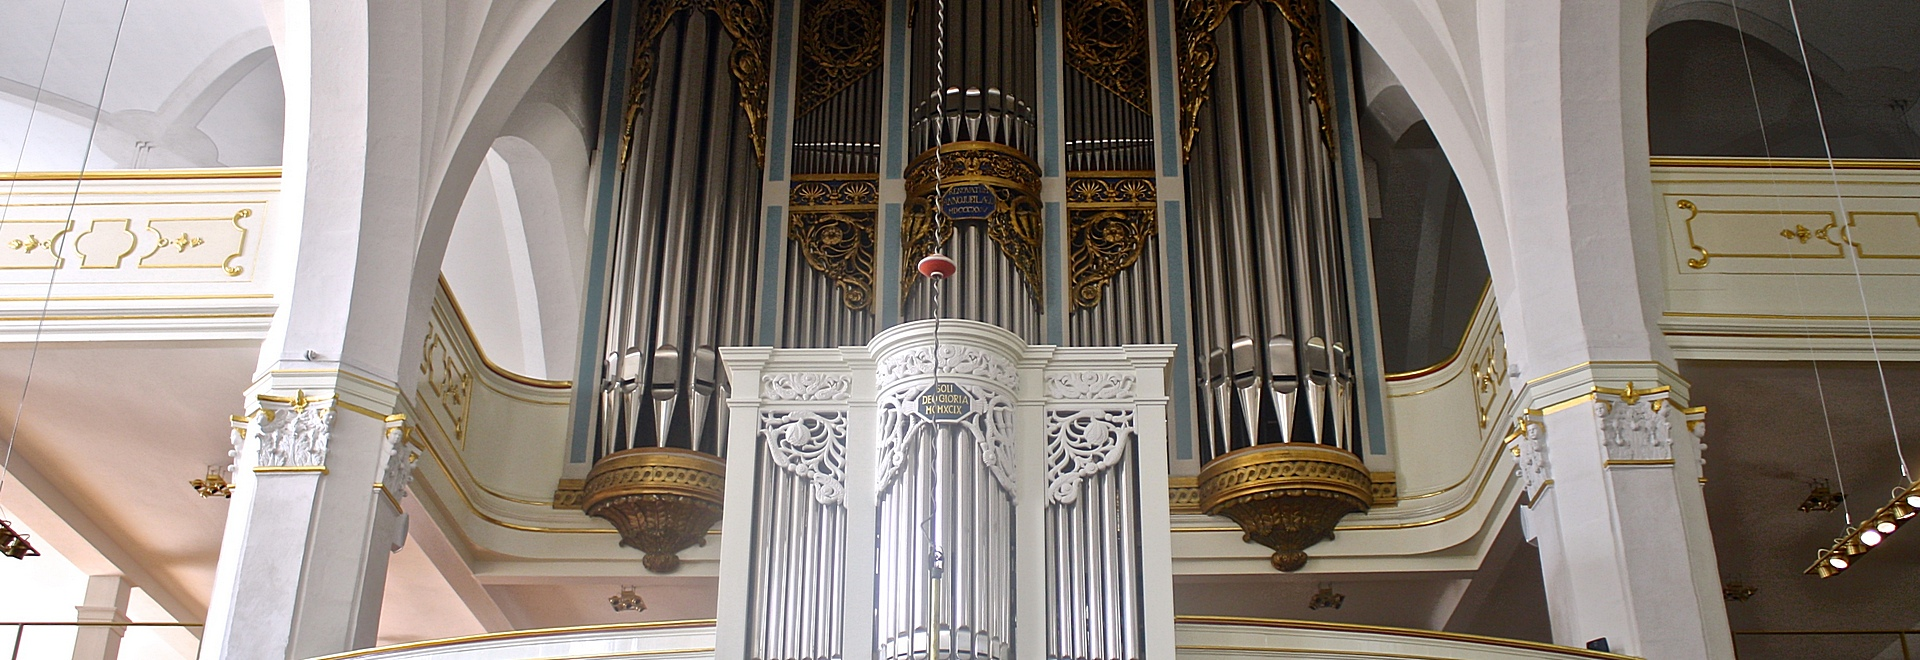 Organ in Weimar